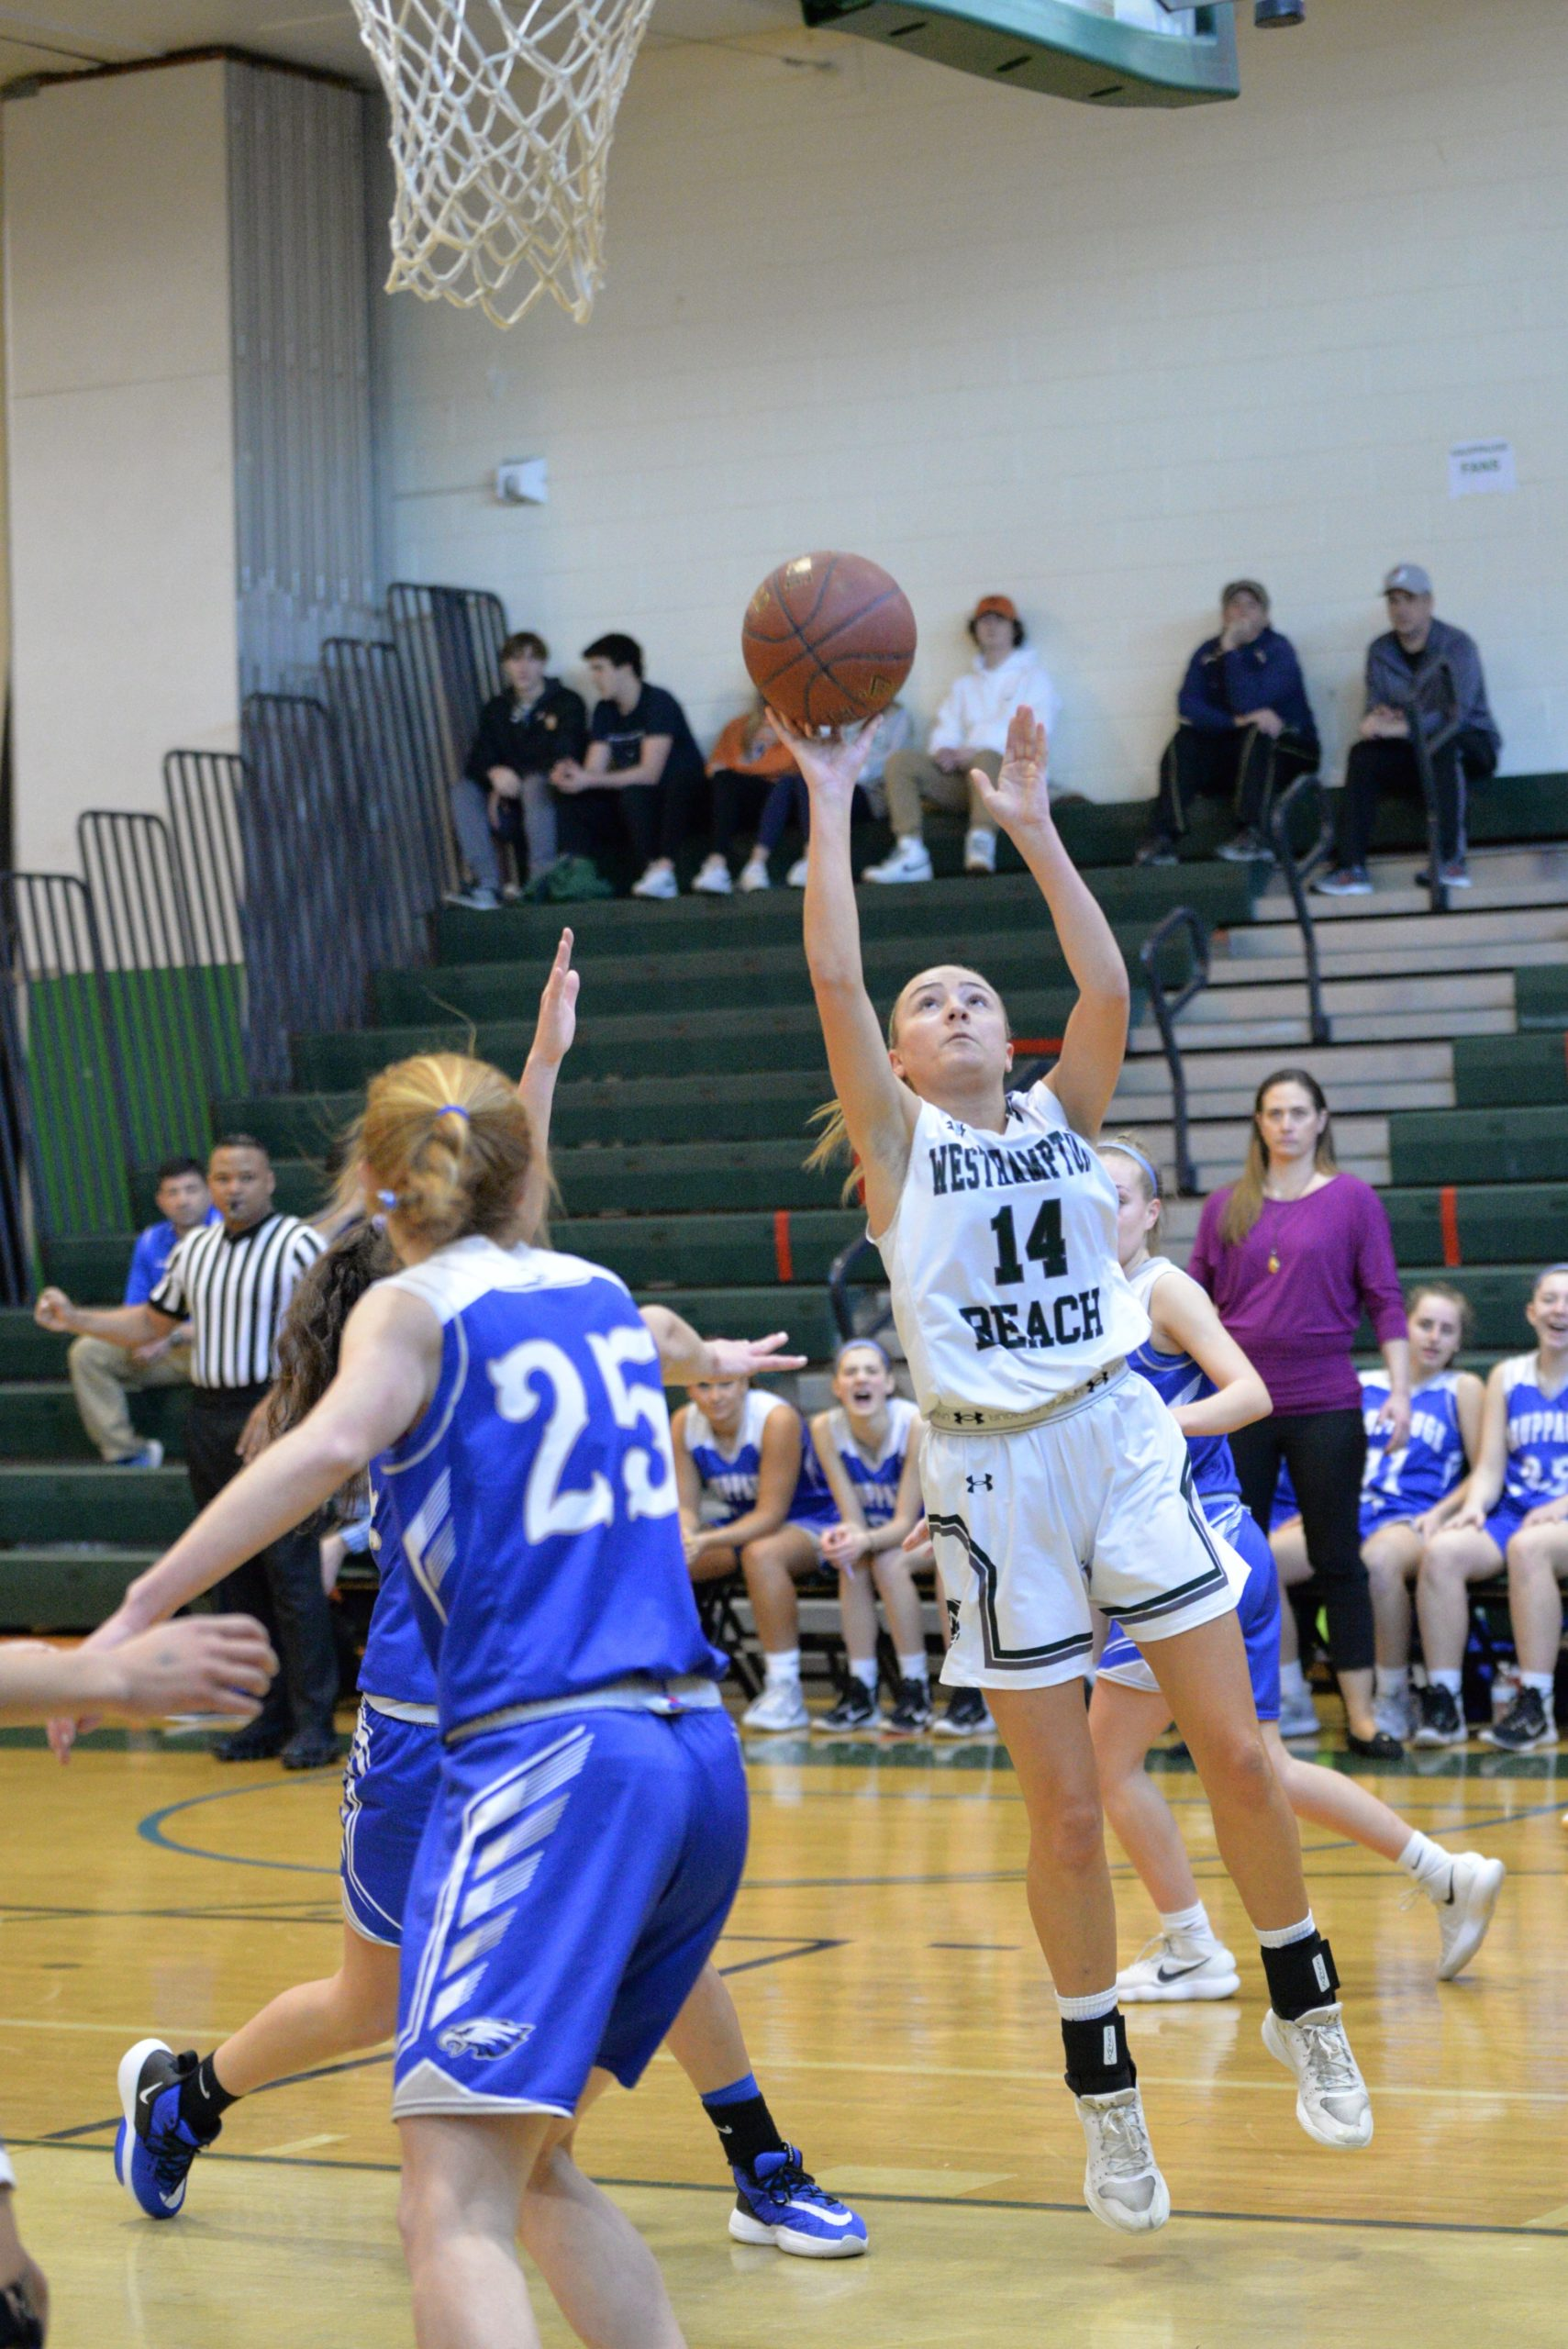 Westhampton Beach senior Isabelle Smith gets some inside leverage and scores.